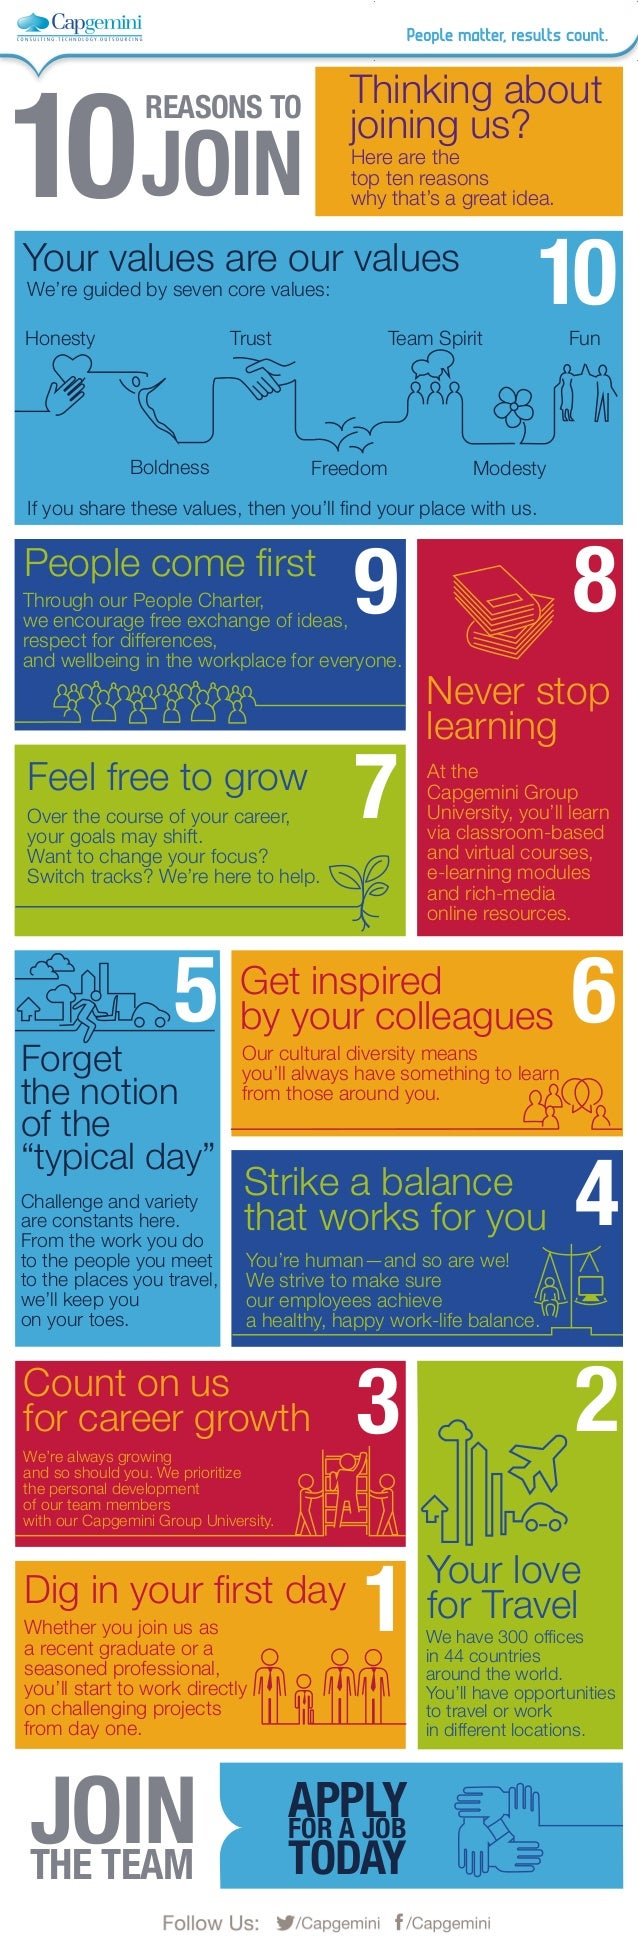 10 Reasons to Join Capgemini